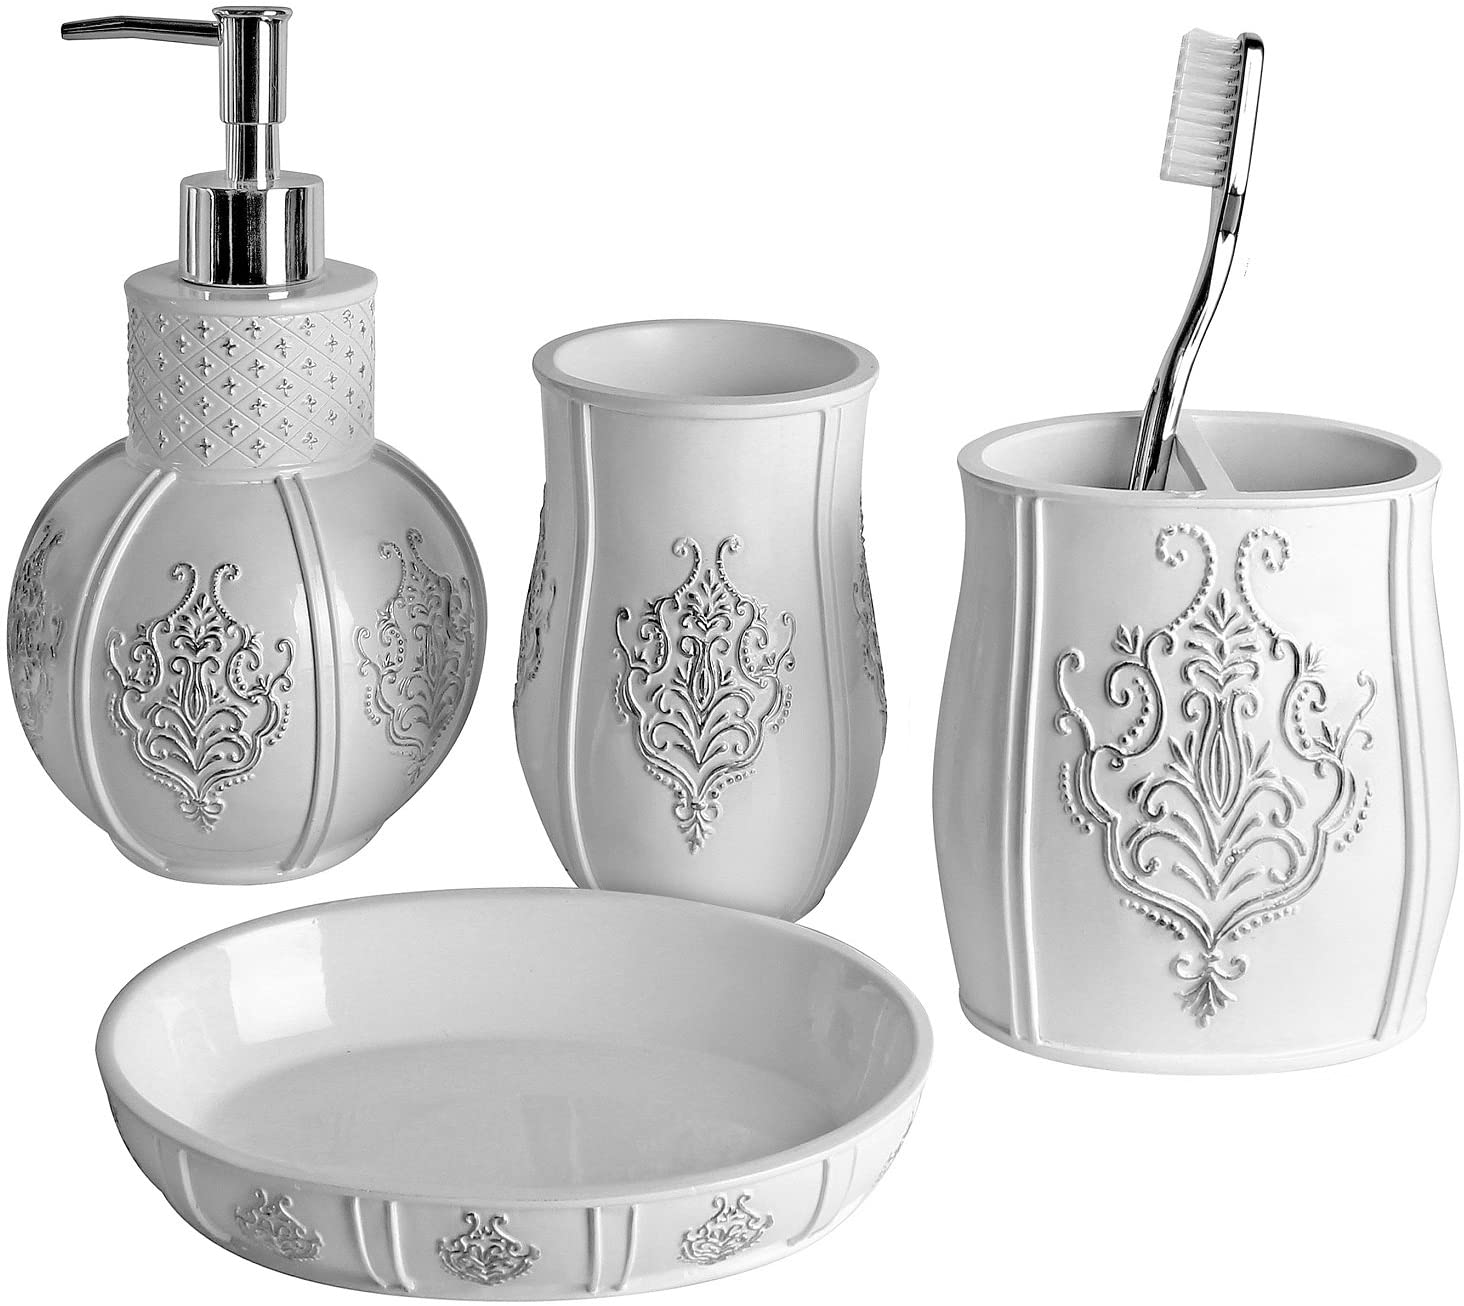 4 piece bathroom accessories made of ceramic silver Schw/änlein Bathroom set soap dish and toothbrush cup toilet brush silver soap dispenser